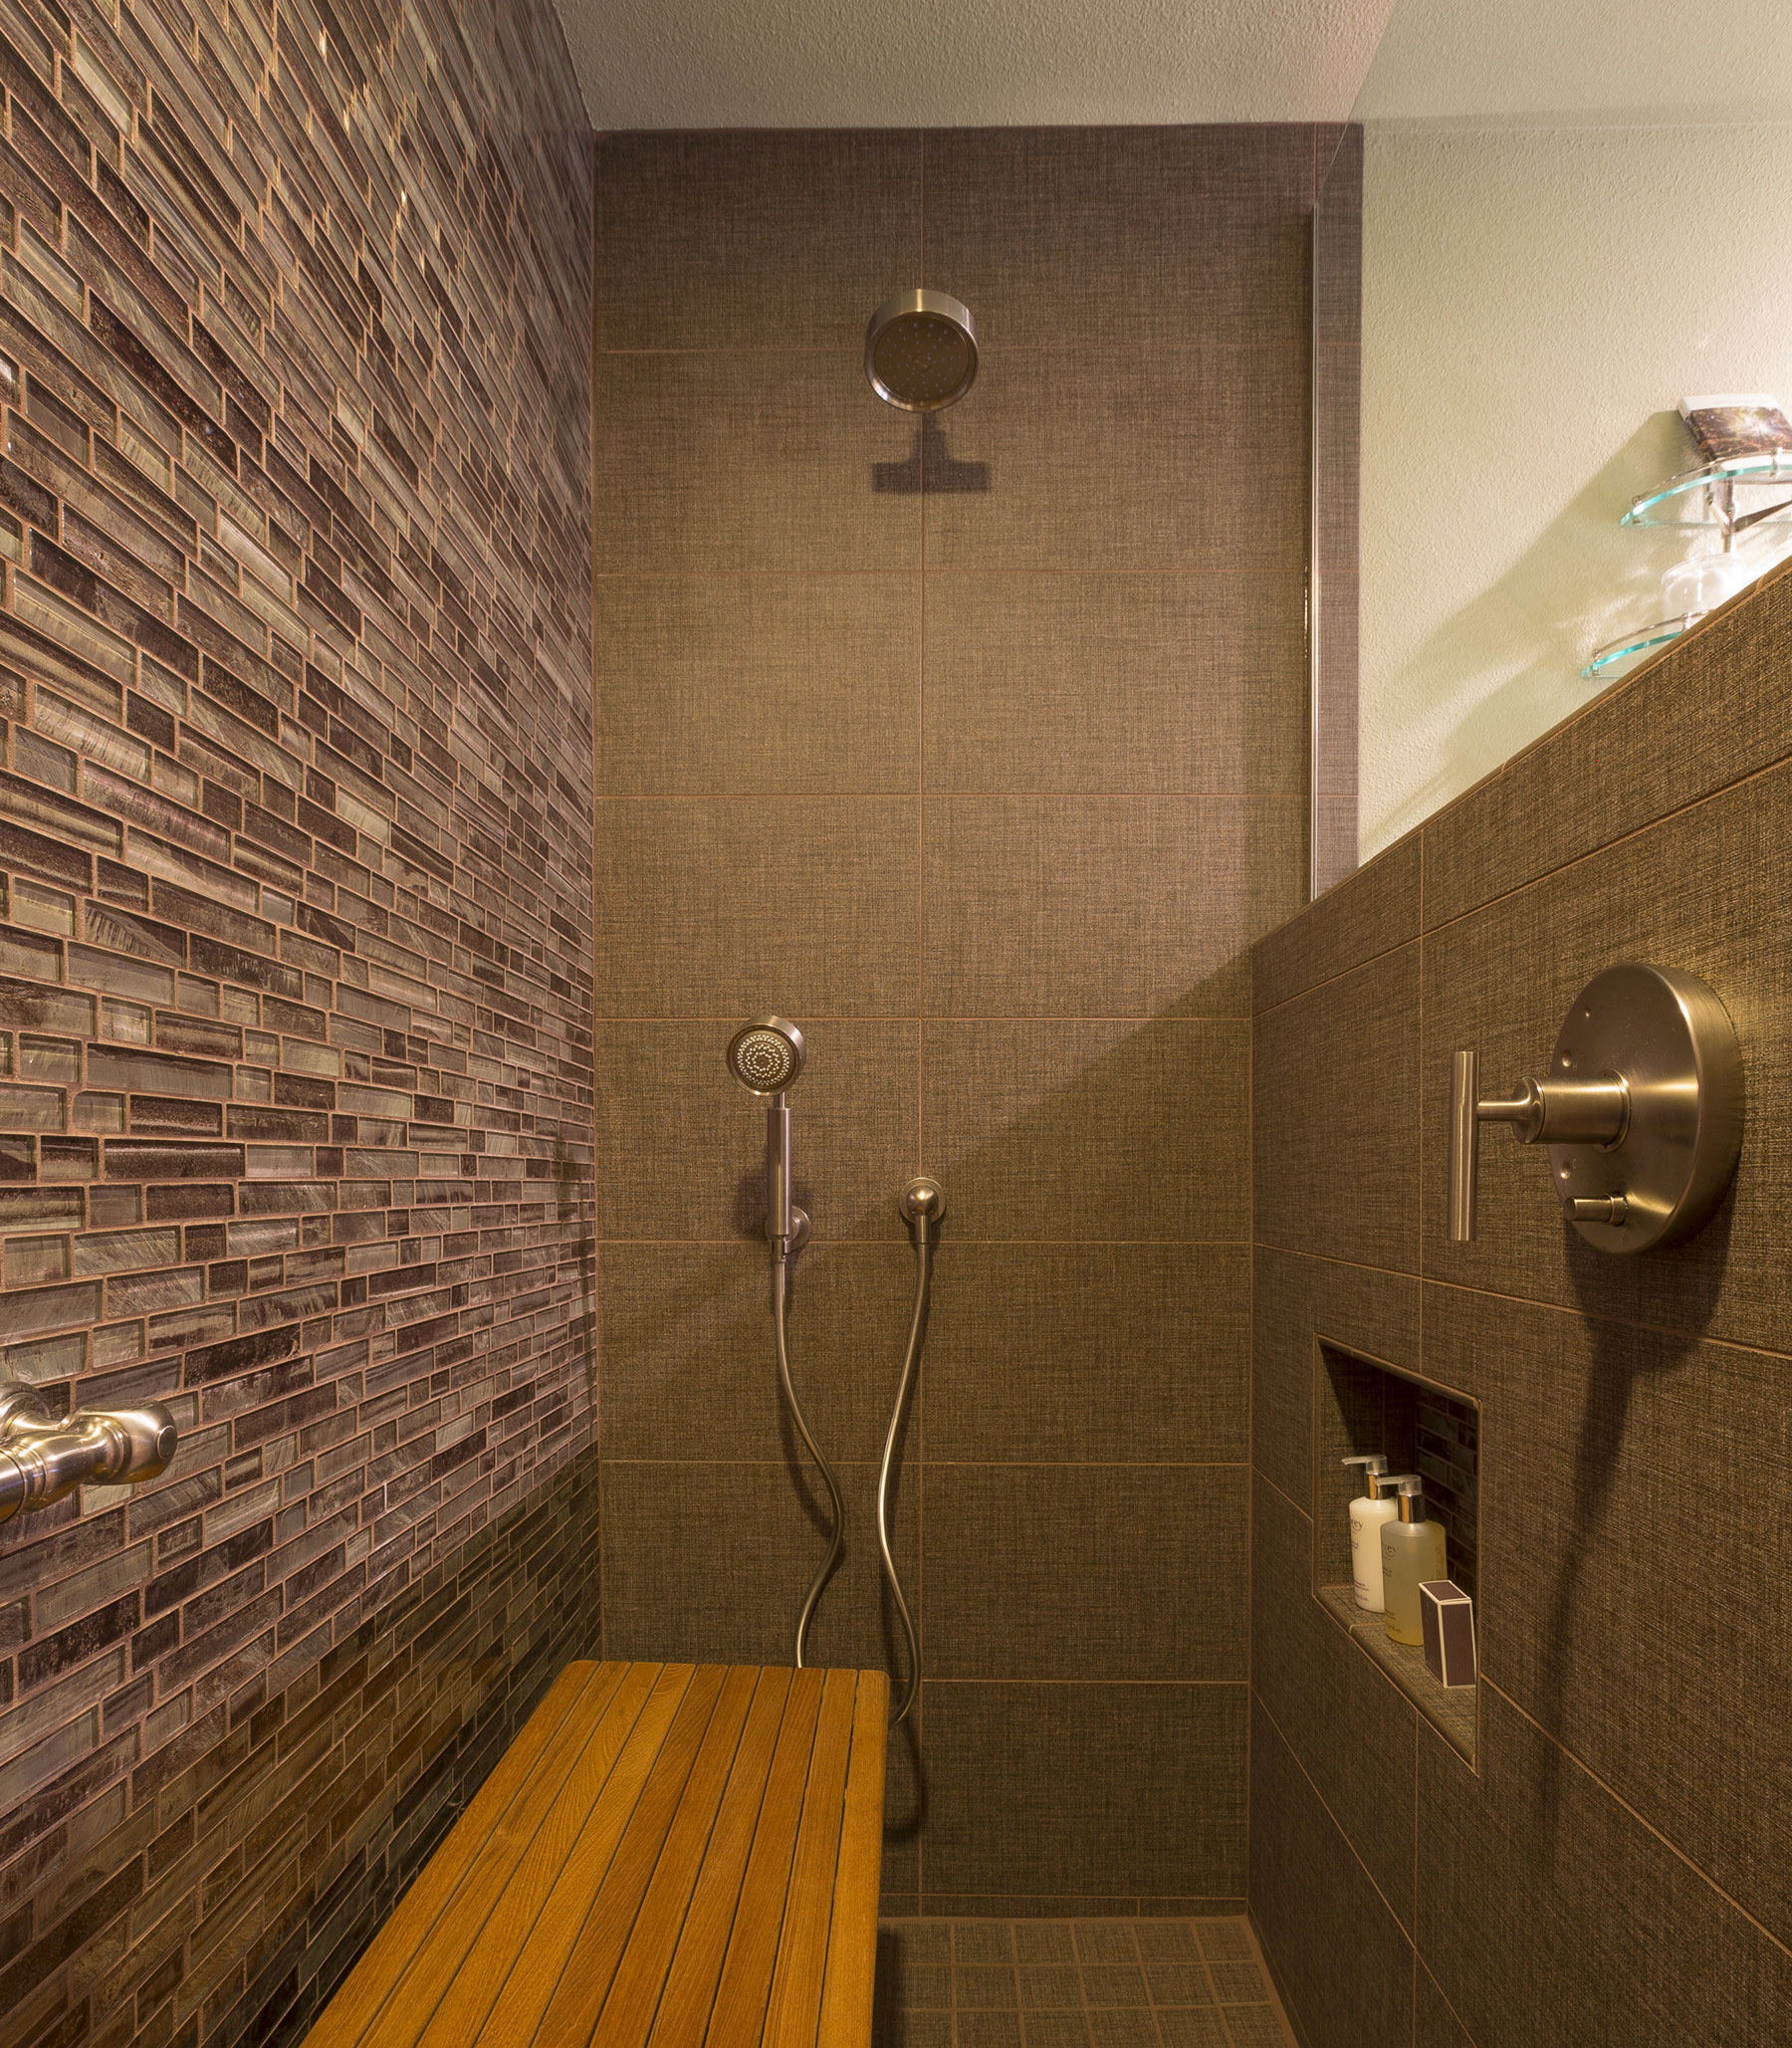 our ADA compliant shower with two heights of shower heads, bench, and grab bar